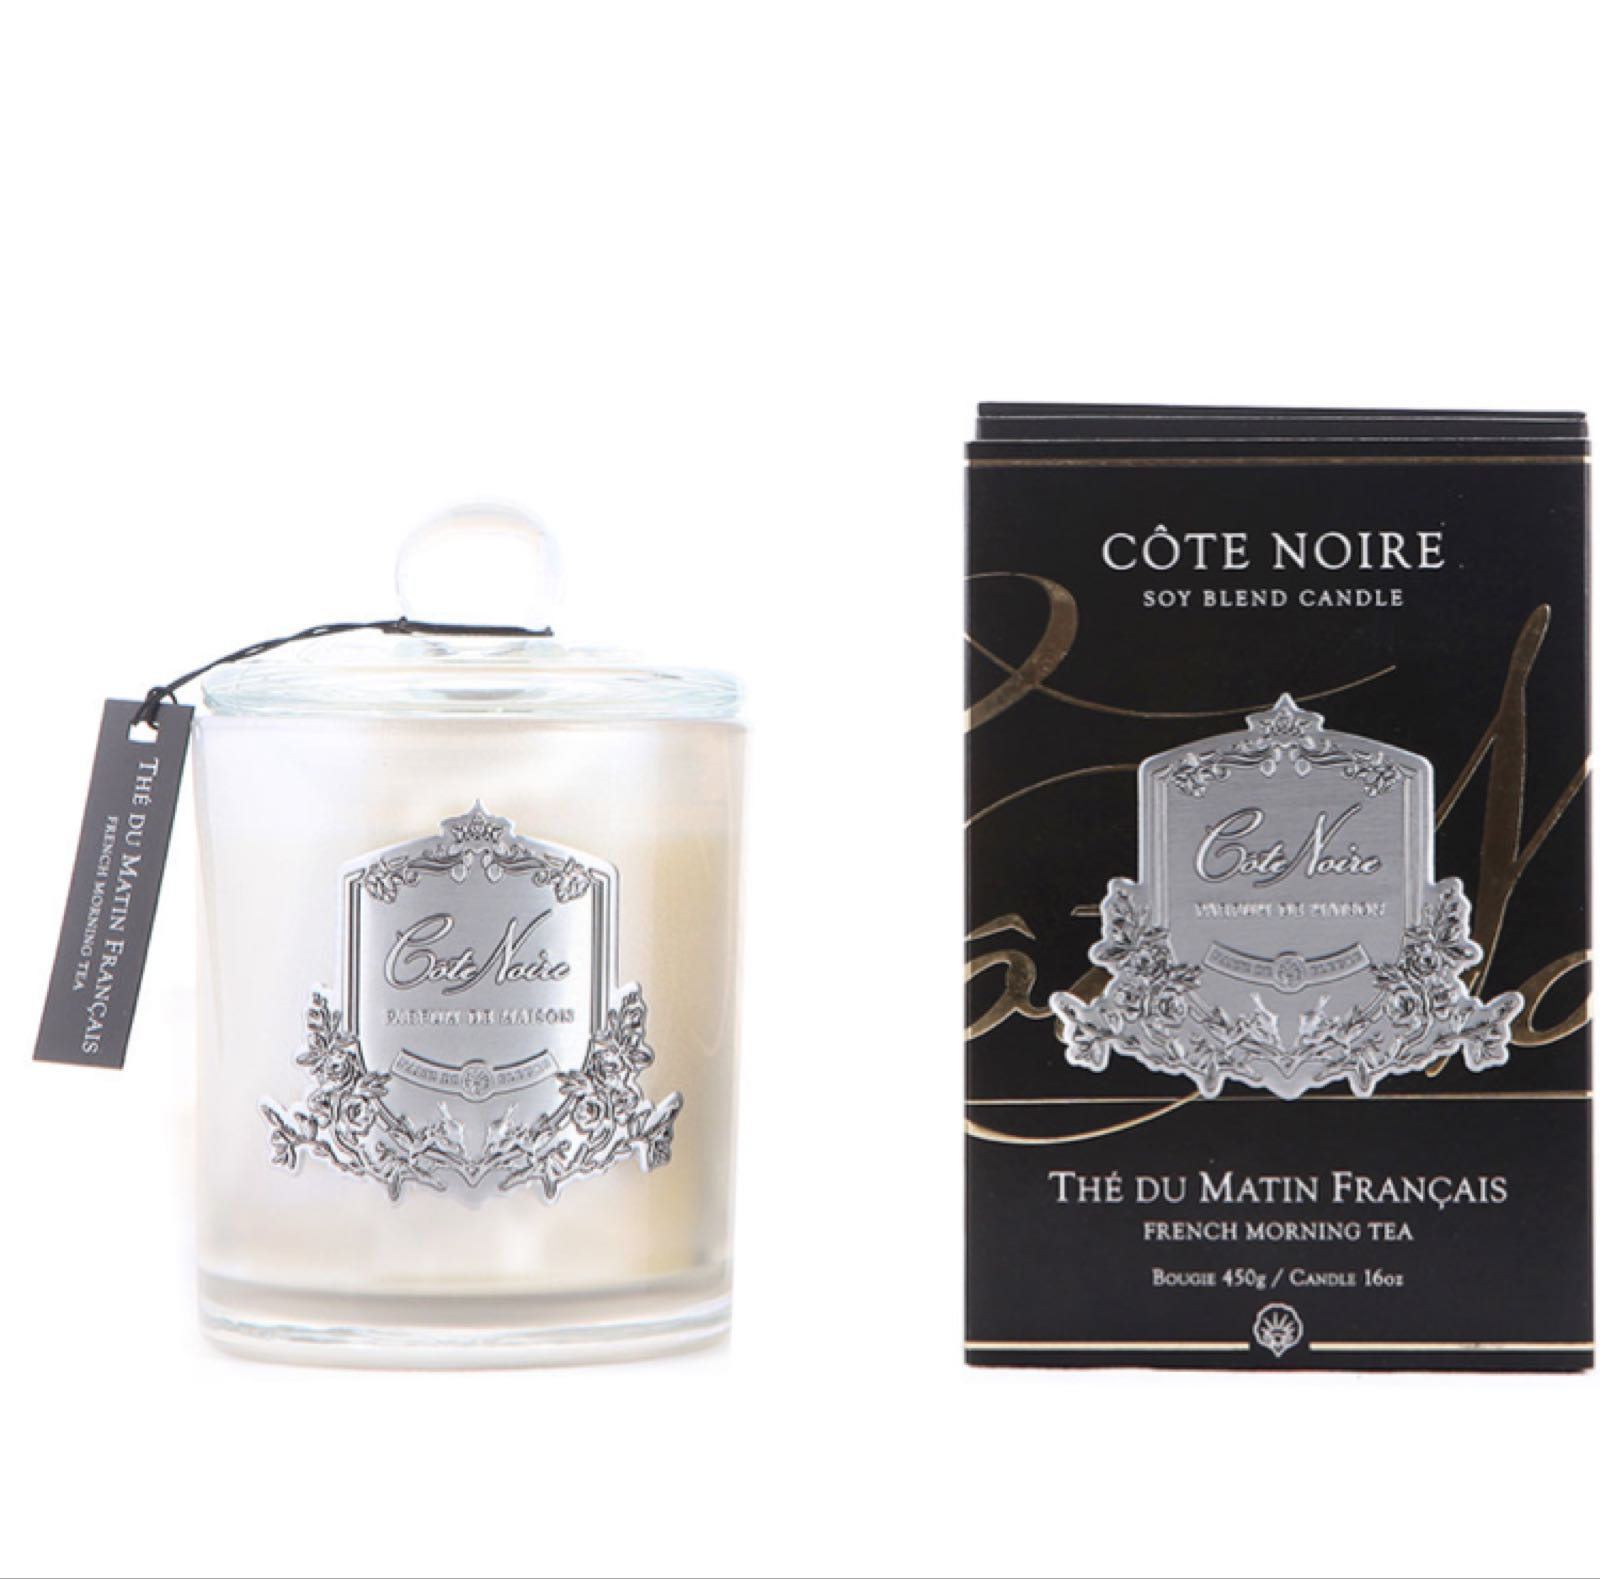 Cote noire French morning tea soy candle 75g